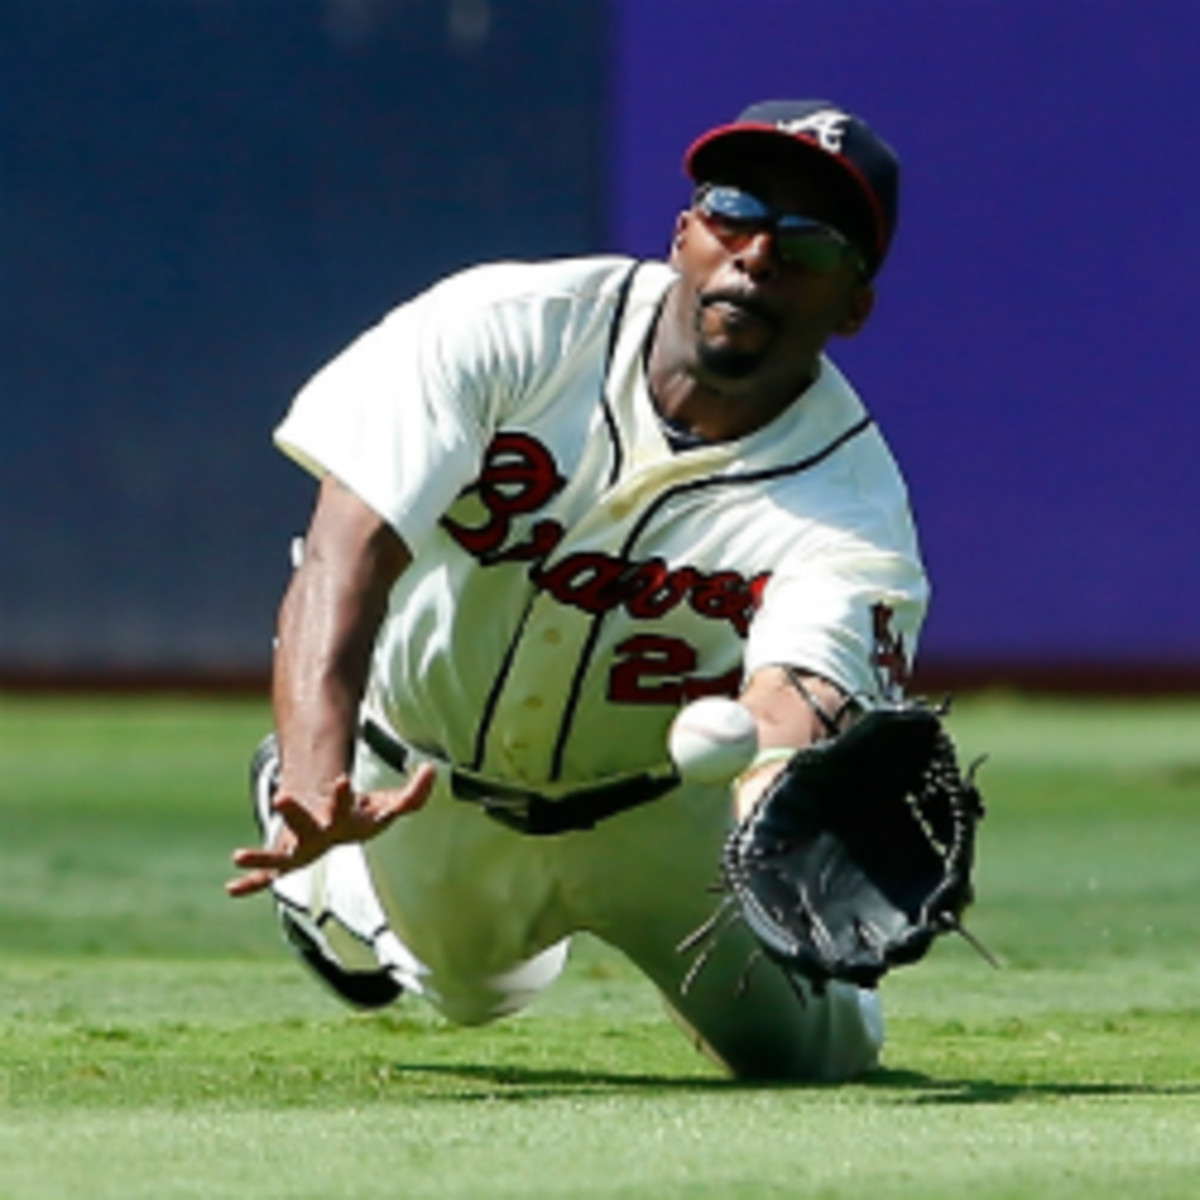 Not many people expect the Braves to re-sign soon-to-be free agent leadoff hitter and center fielder Michael Bourn. (Kevin C. Cox/Getty Images)